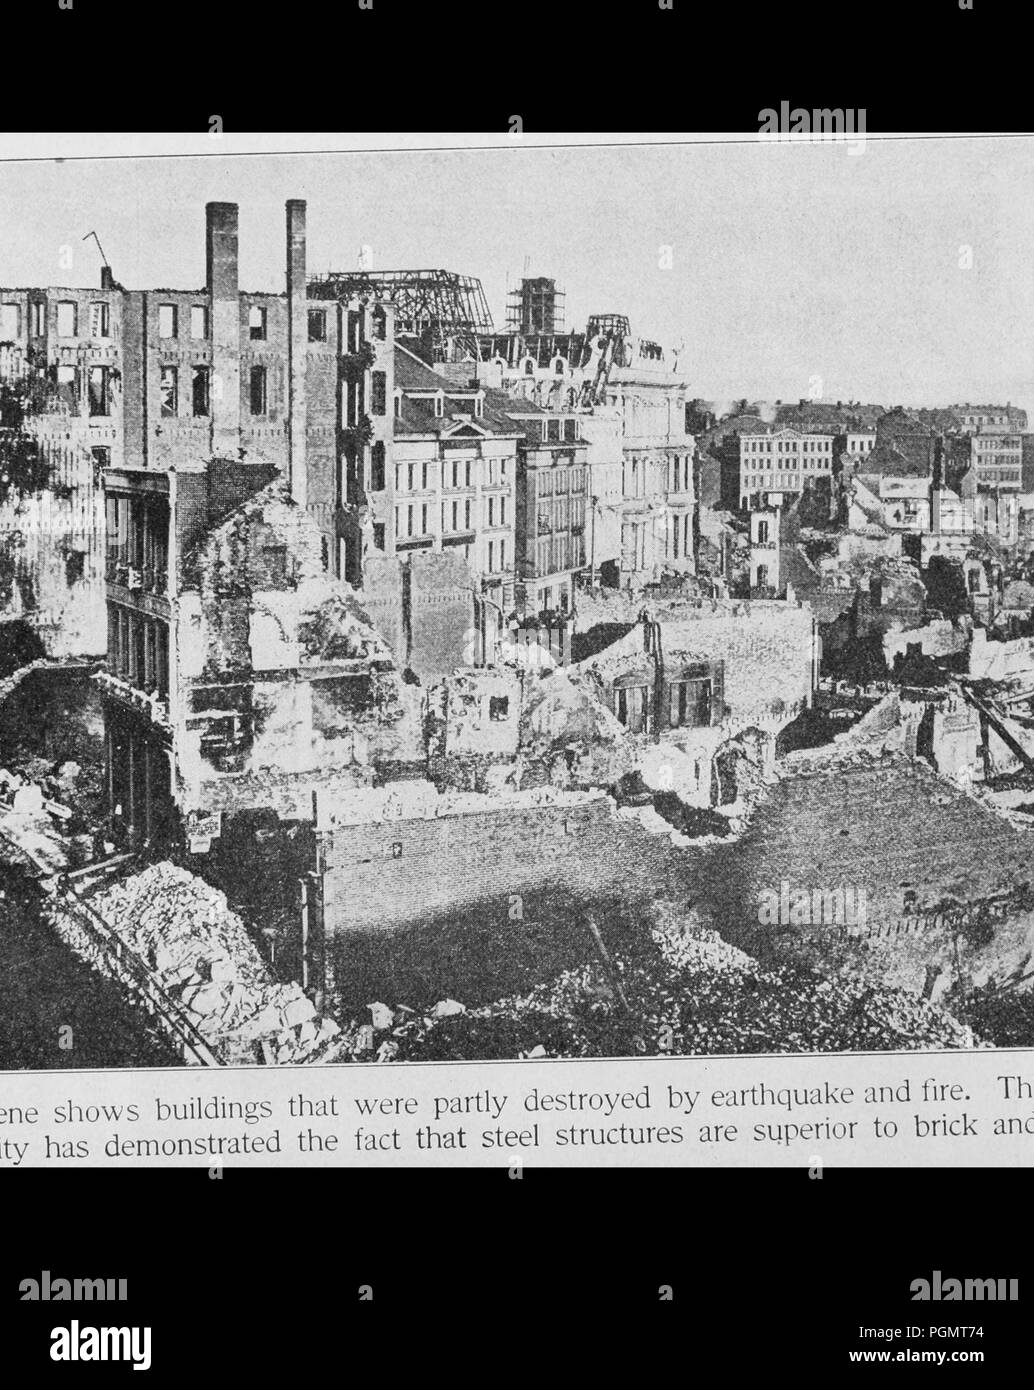 Black and white illustration, from a high angle, showing widespread destruction in urban San Francisco caused by the 1906 earthquake and fires, with a caption stating the 'calamity has demonstrated the fact that steel structures are superior to brick and stone', 1906. Courtesy Internet Archive. () - Stock Image